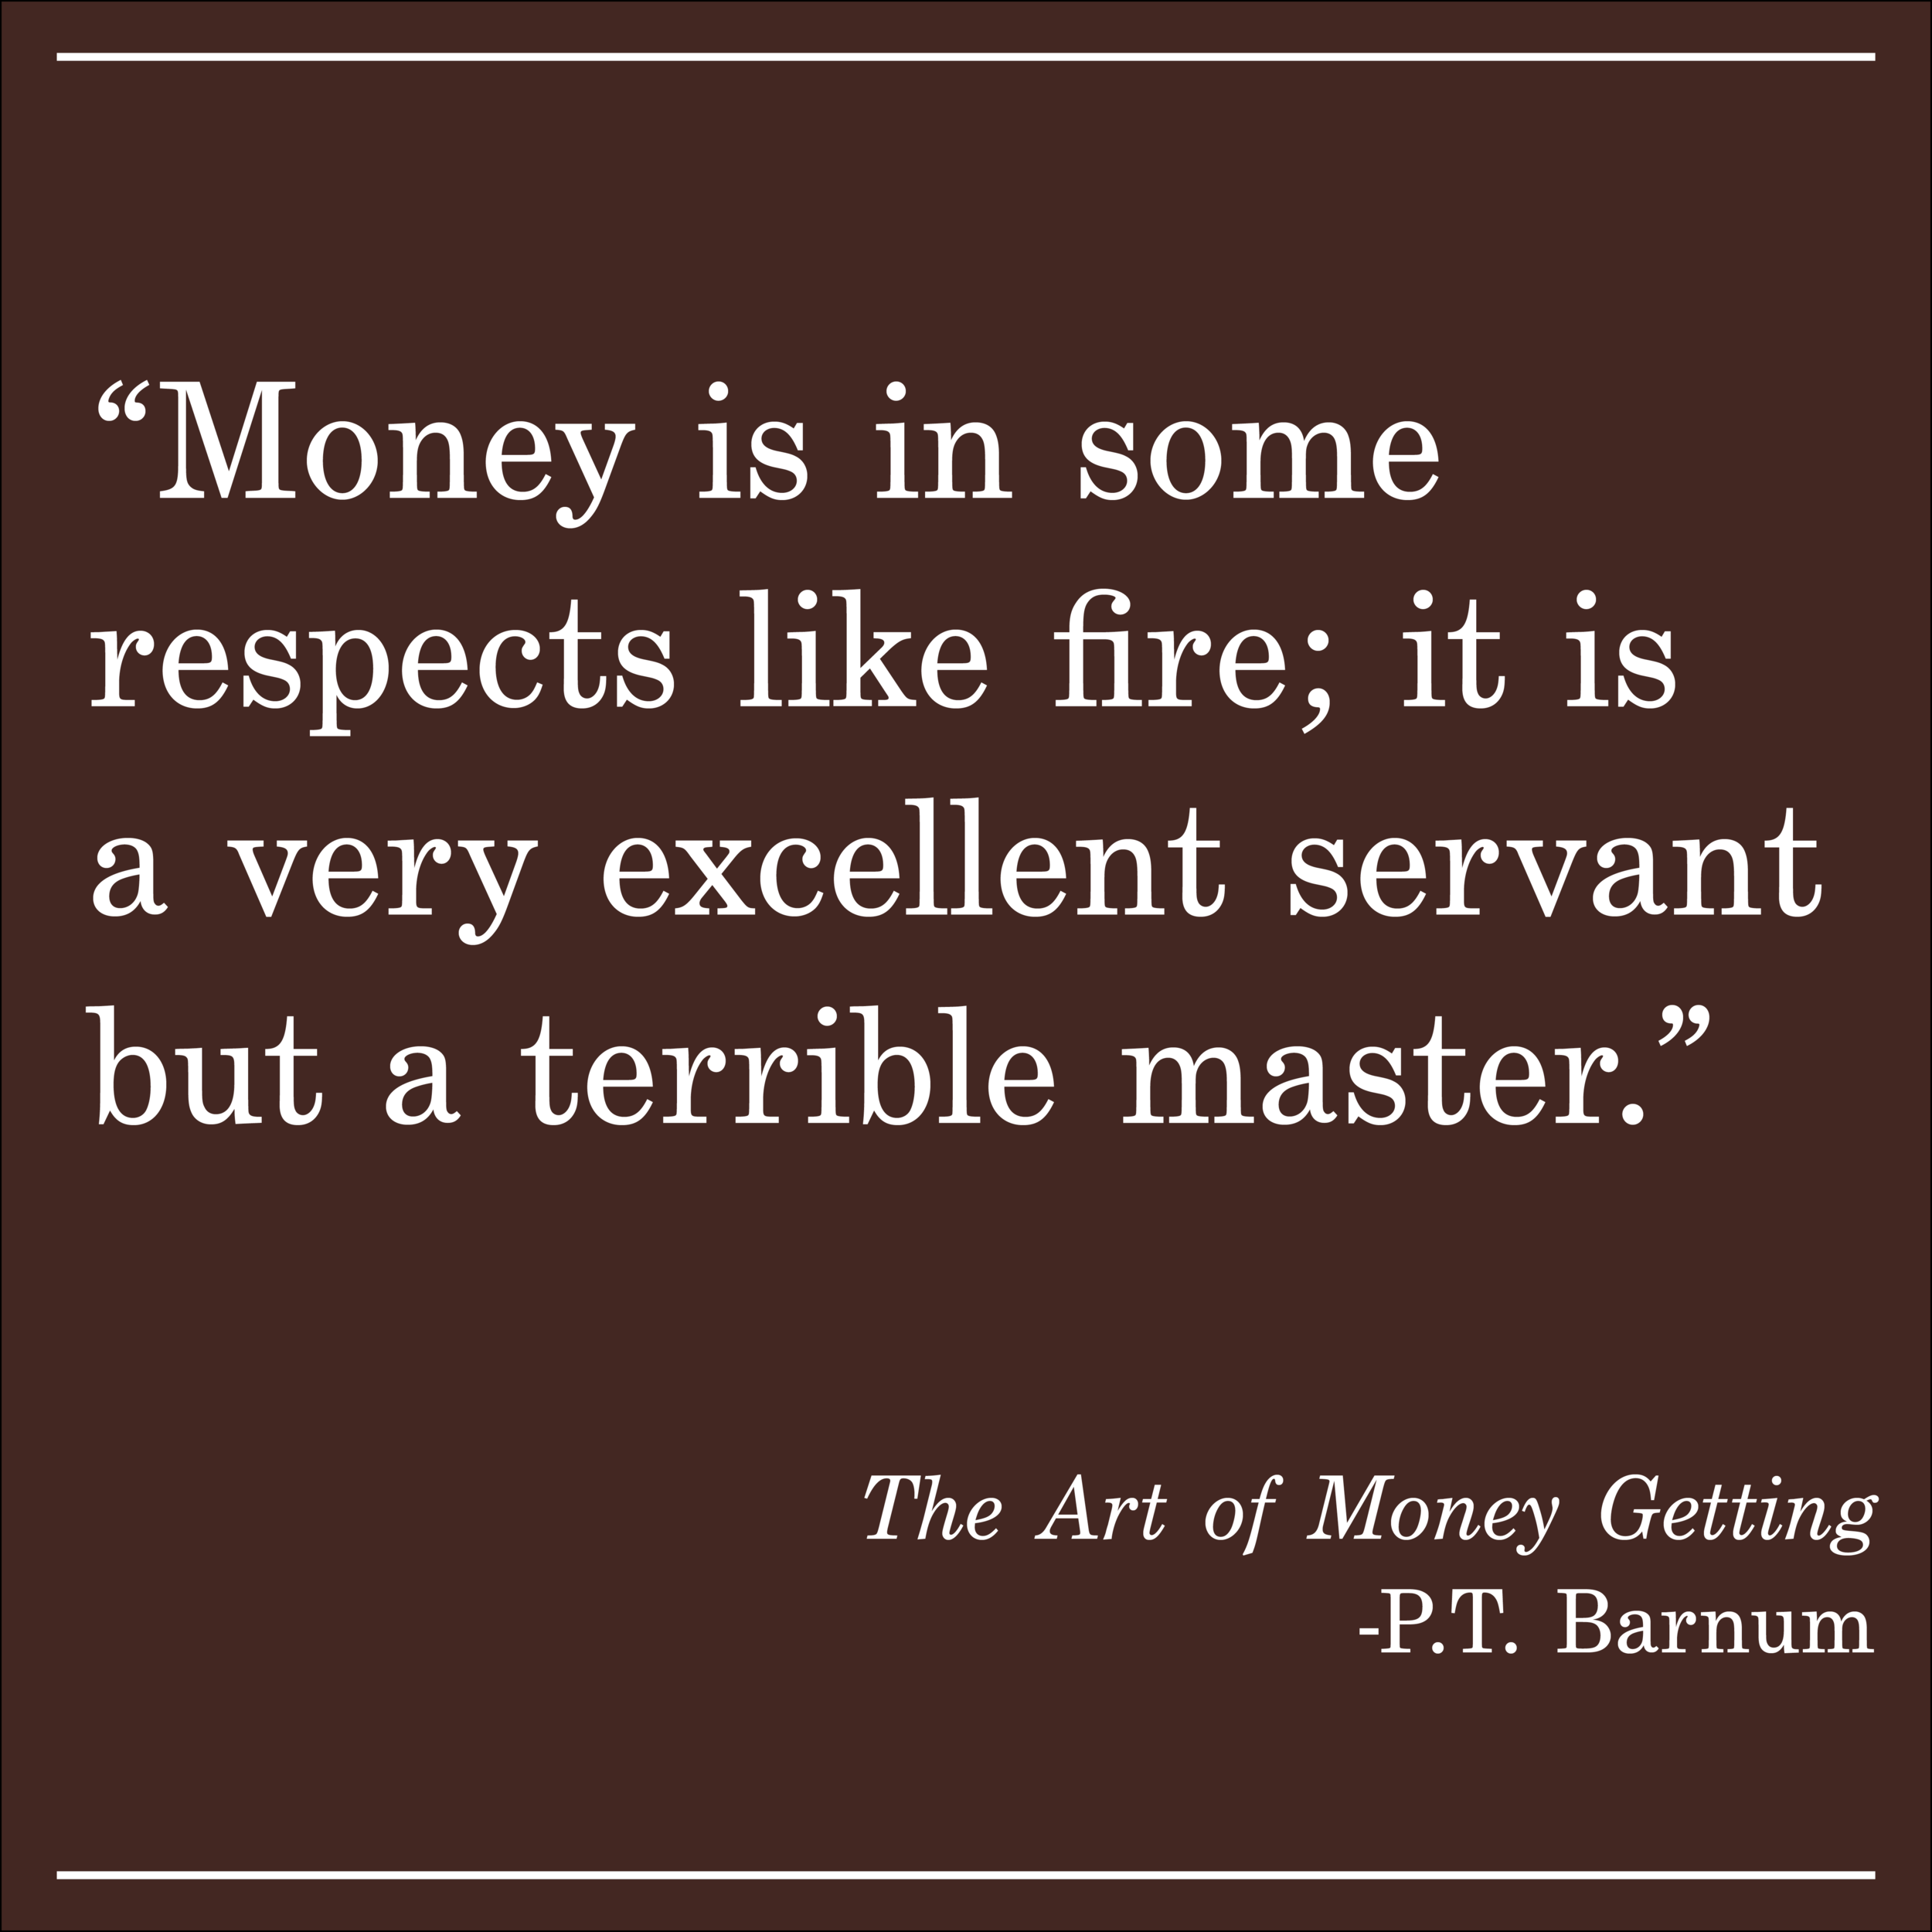 Daily Quote The Art of Money Getting by PT Barnum